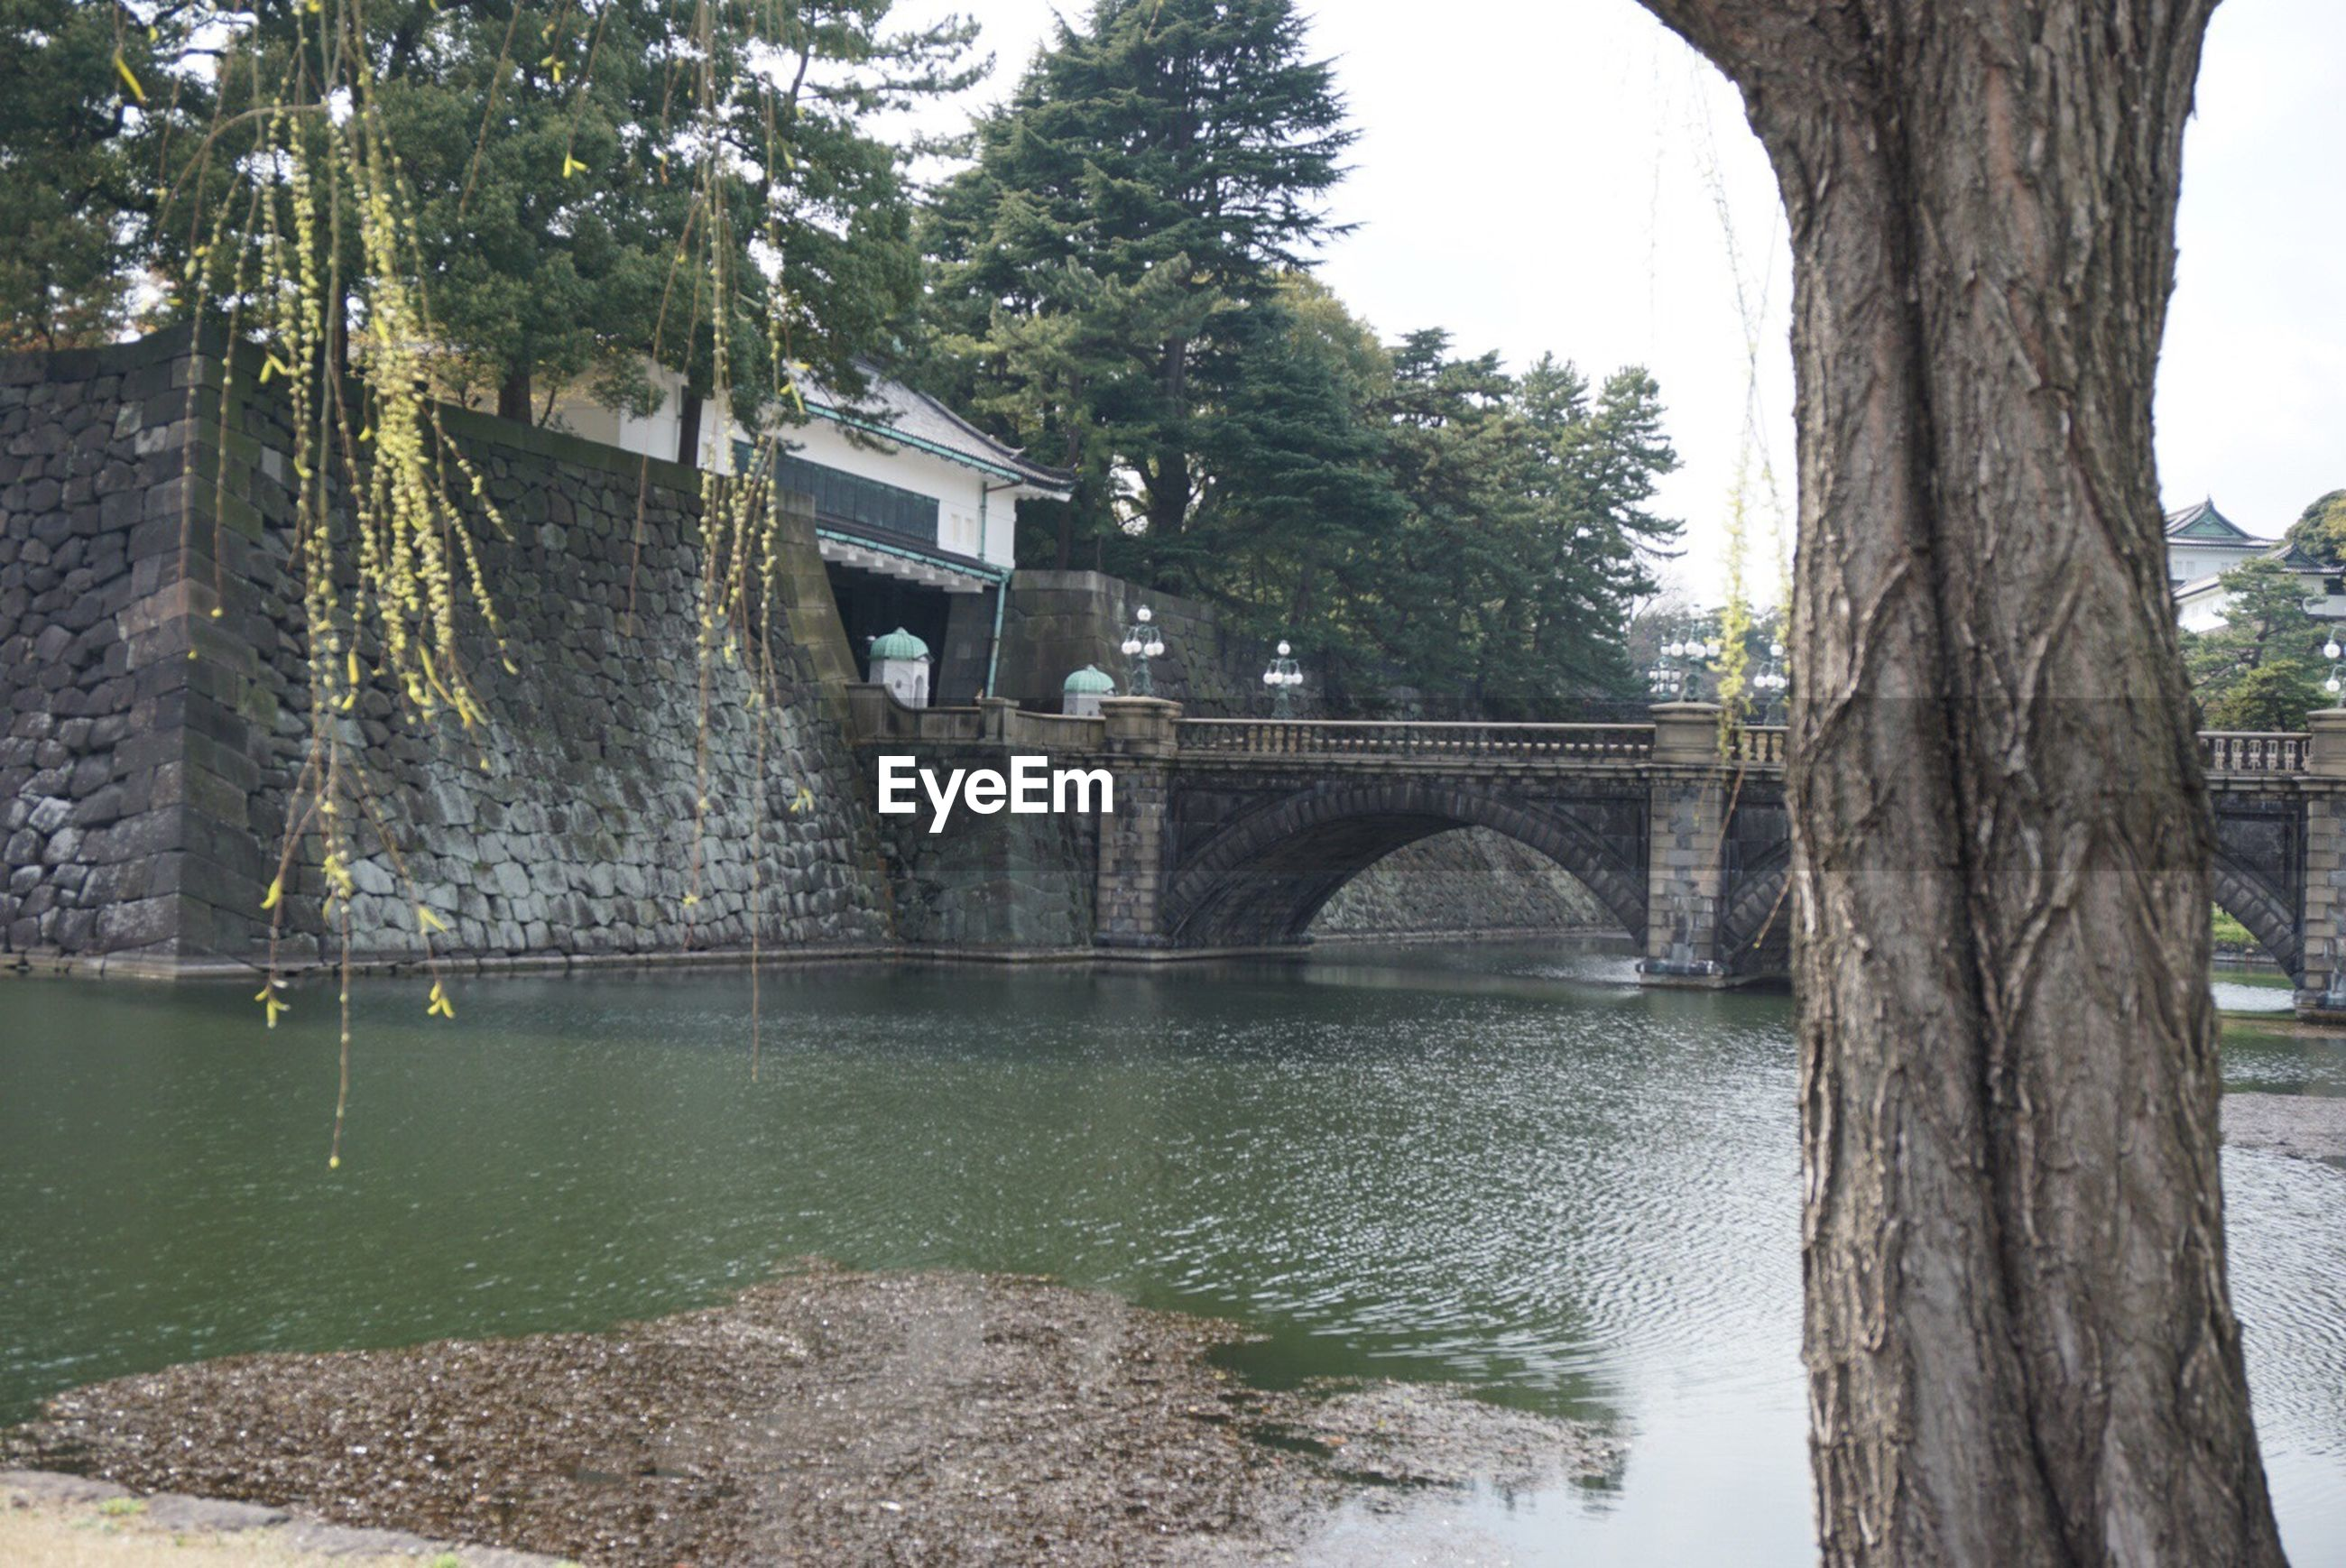 architecture, tree, built structure, connection, bridge - man made structure, water, day, arch, outdoors, building exterior, no people, nature